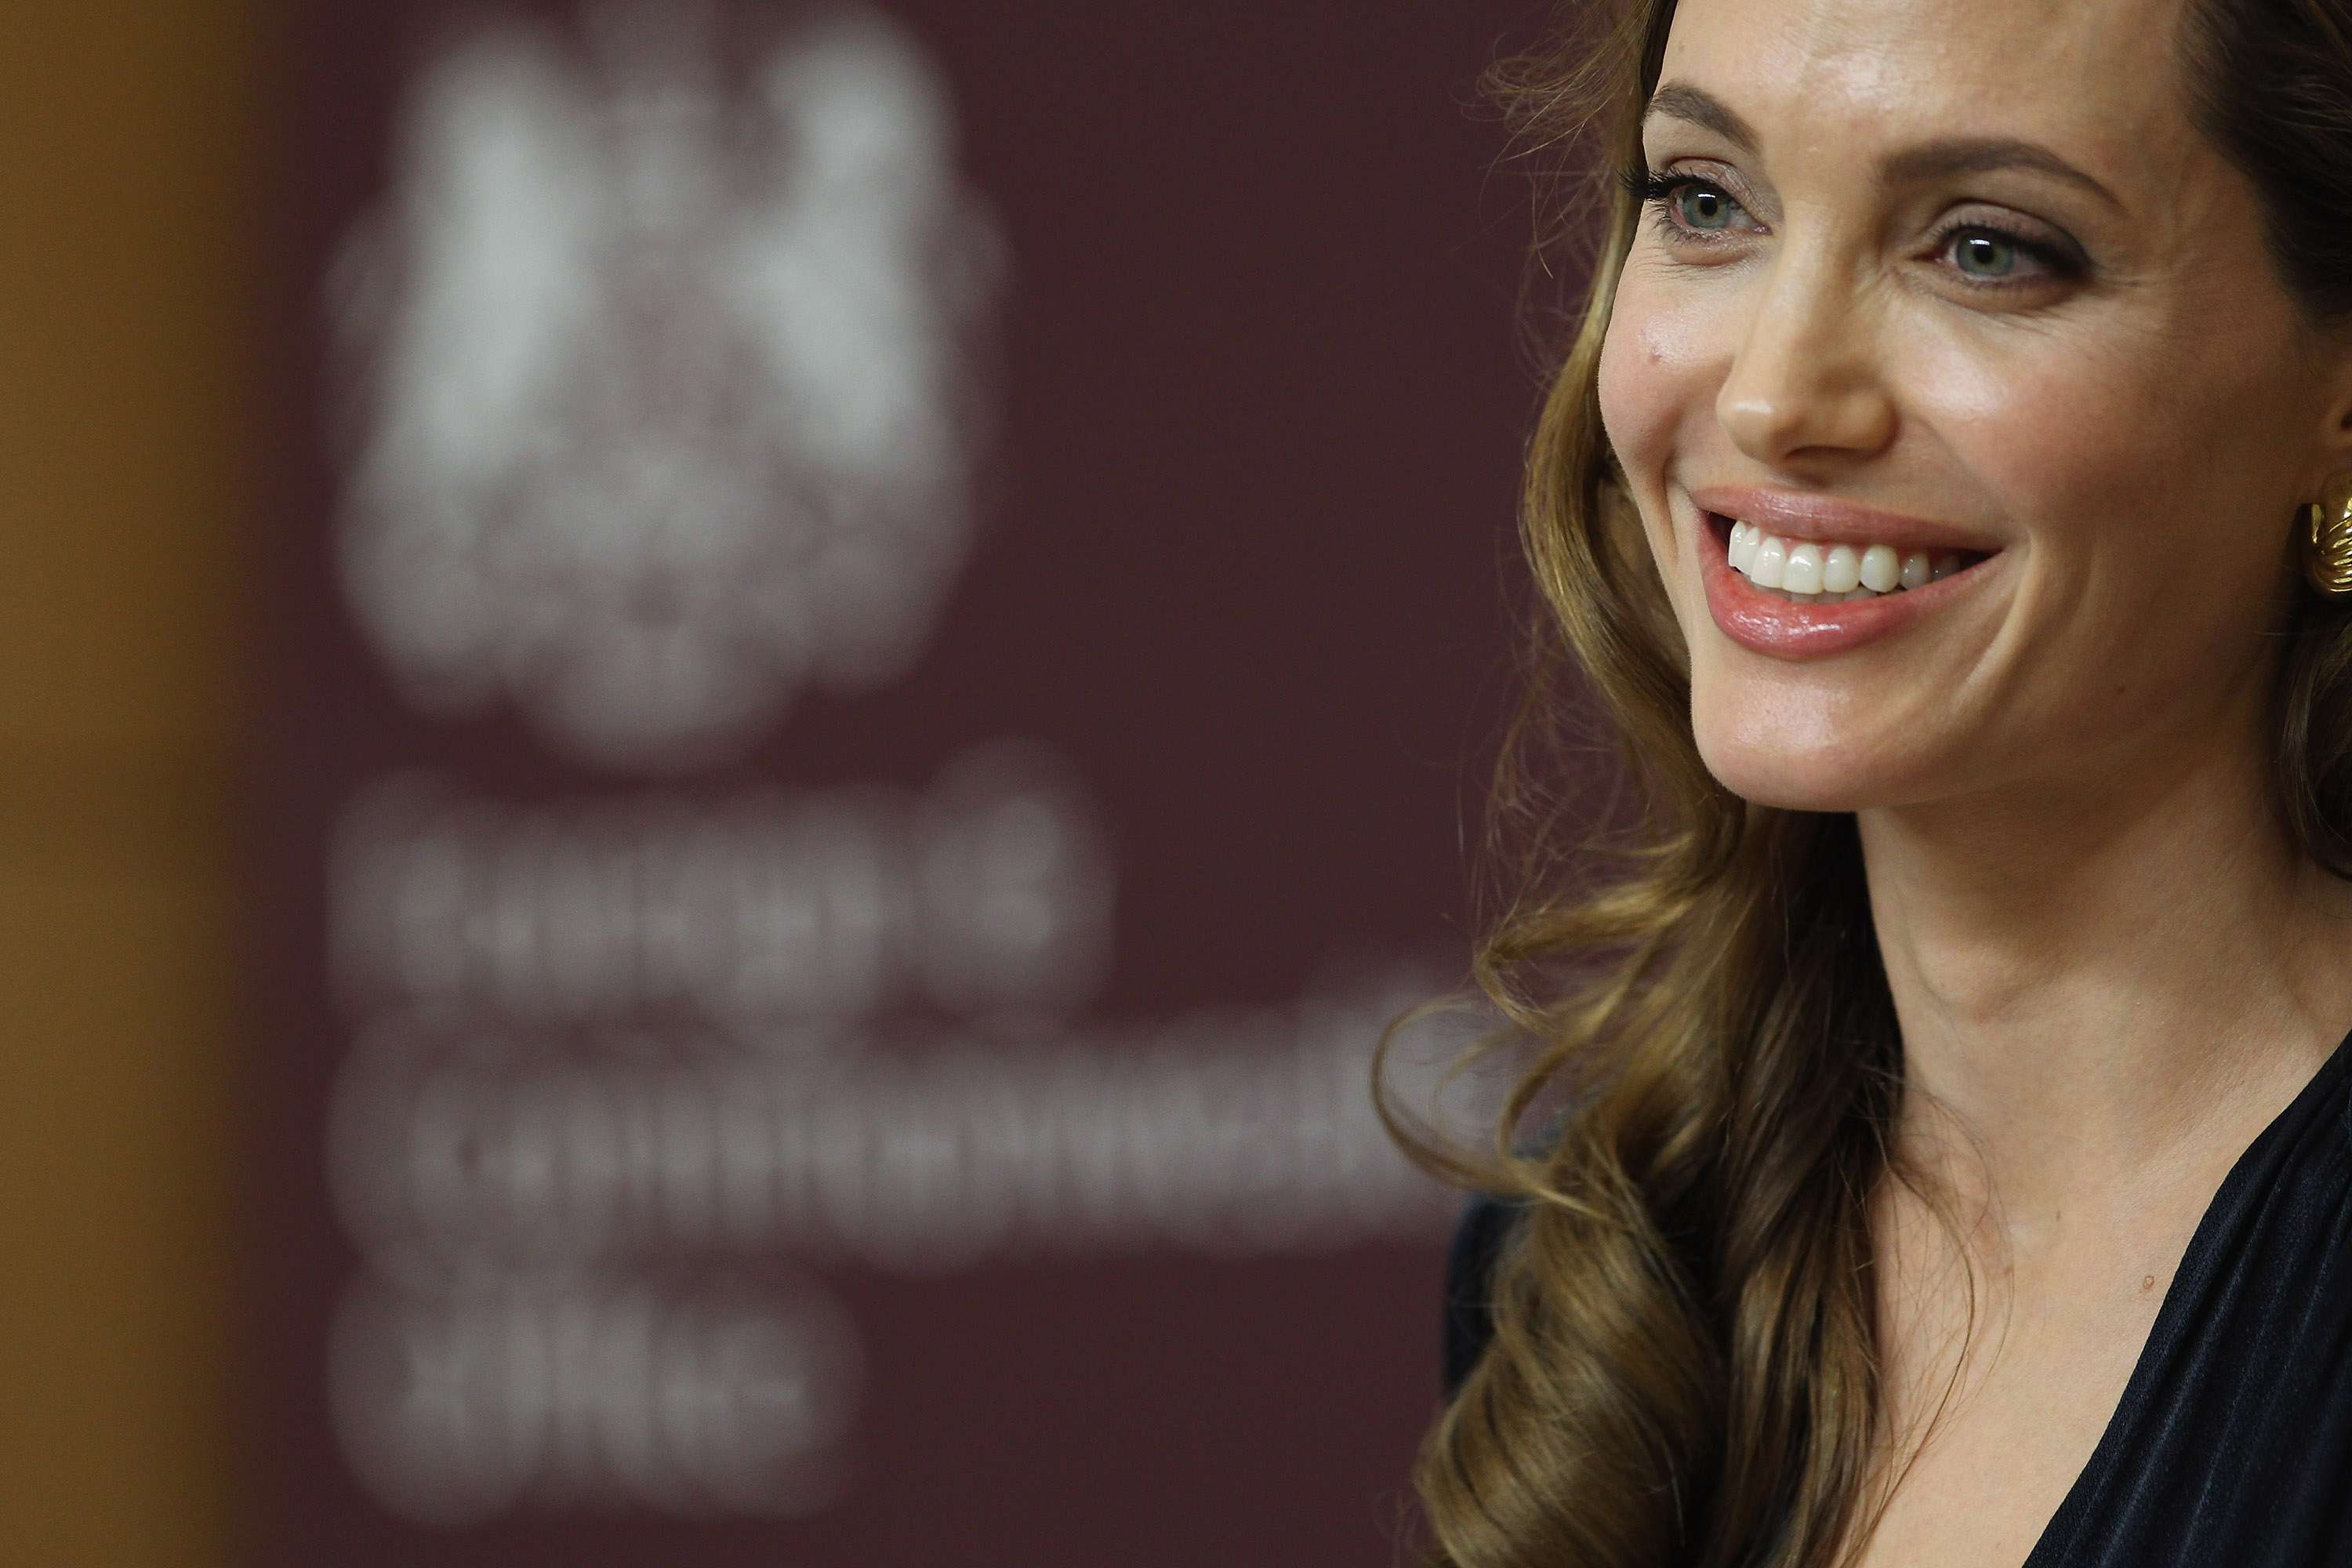 La actriz Angelina Jolie se sometió a una doble masectomía preventiva. Foto: Getty Images